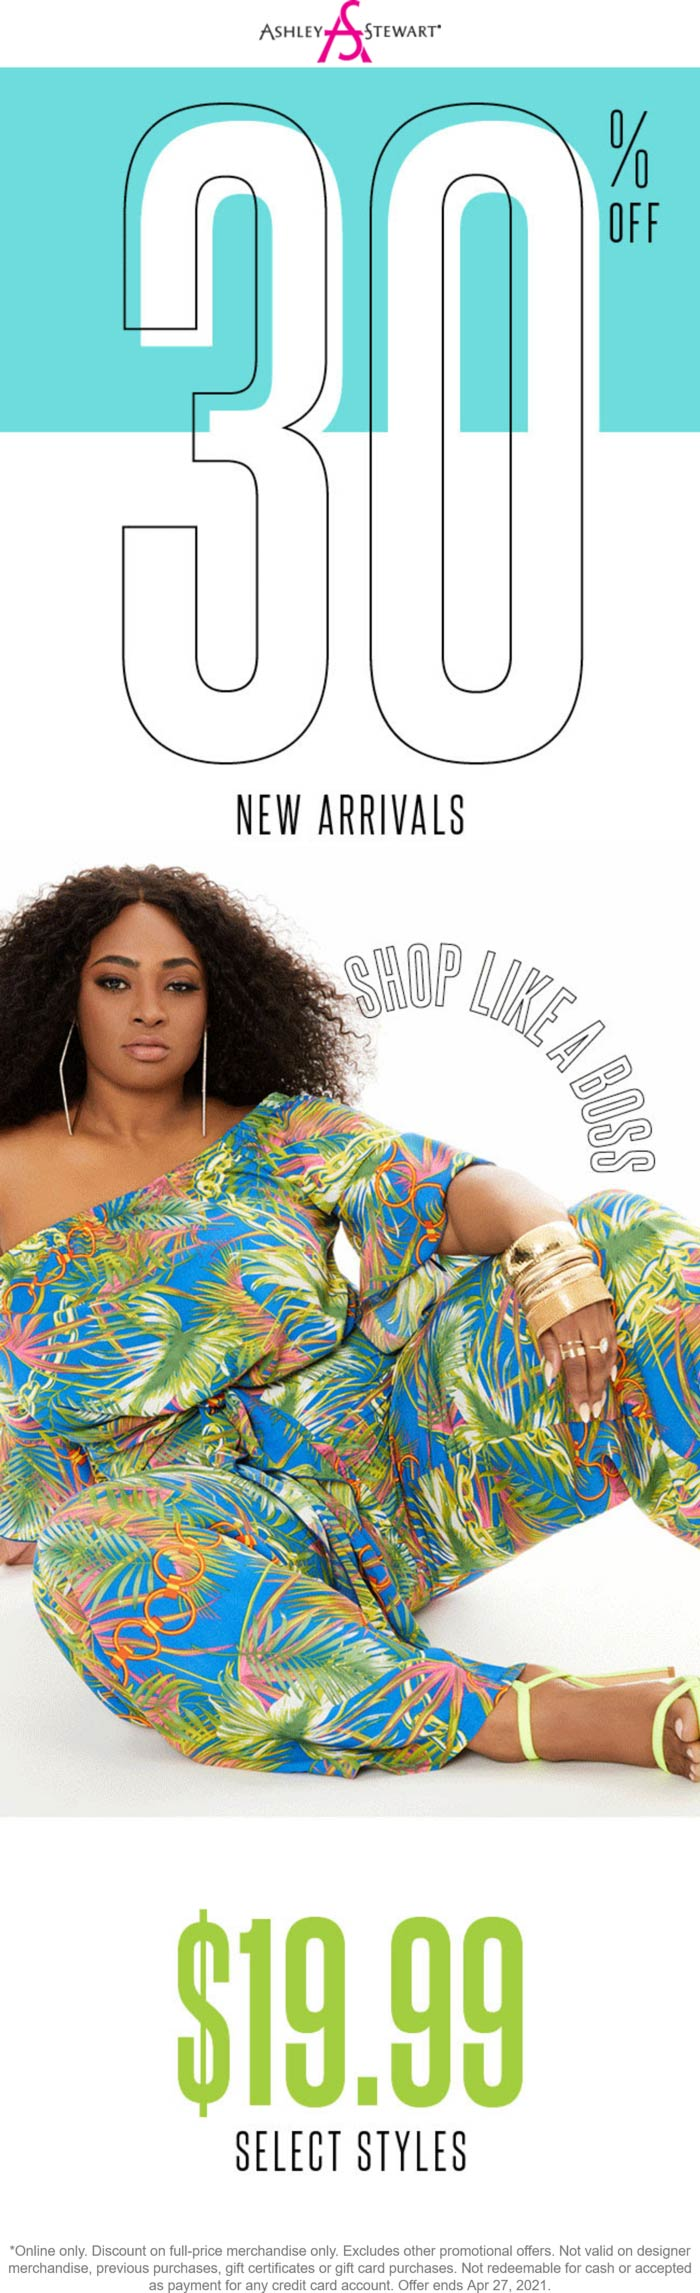 Ashley Stewart stores Coupon  30% off new arrivals today online at Ashley Stewart #ashleystewart